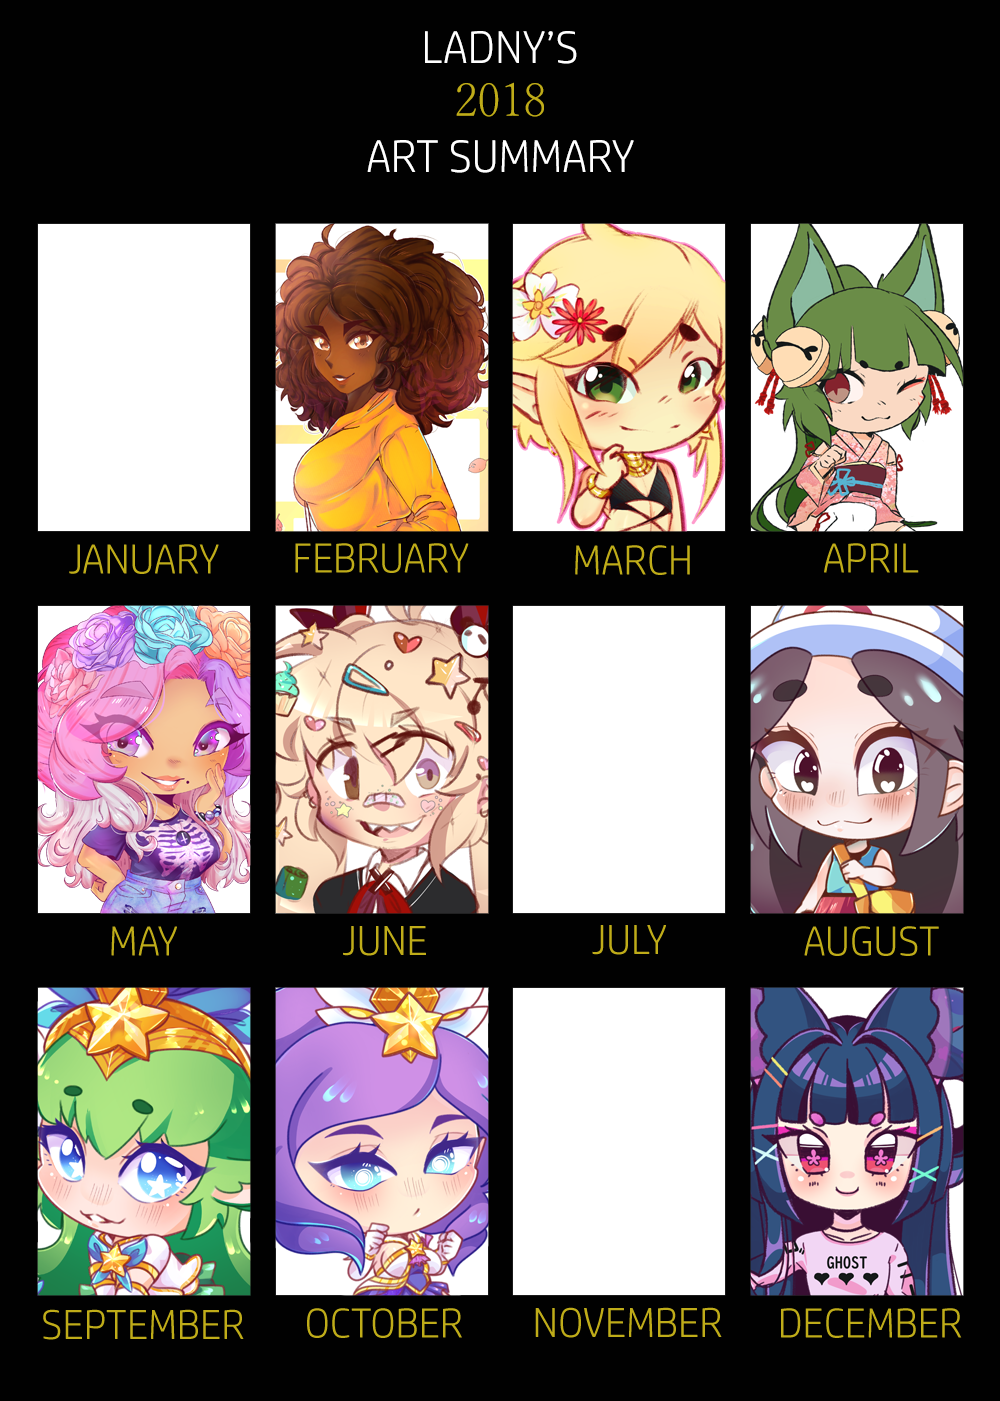 2018 Art Summary by ladny